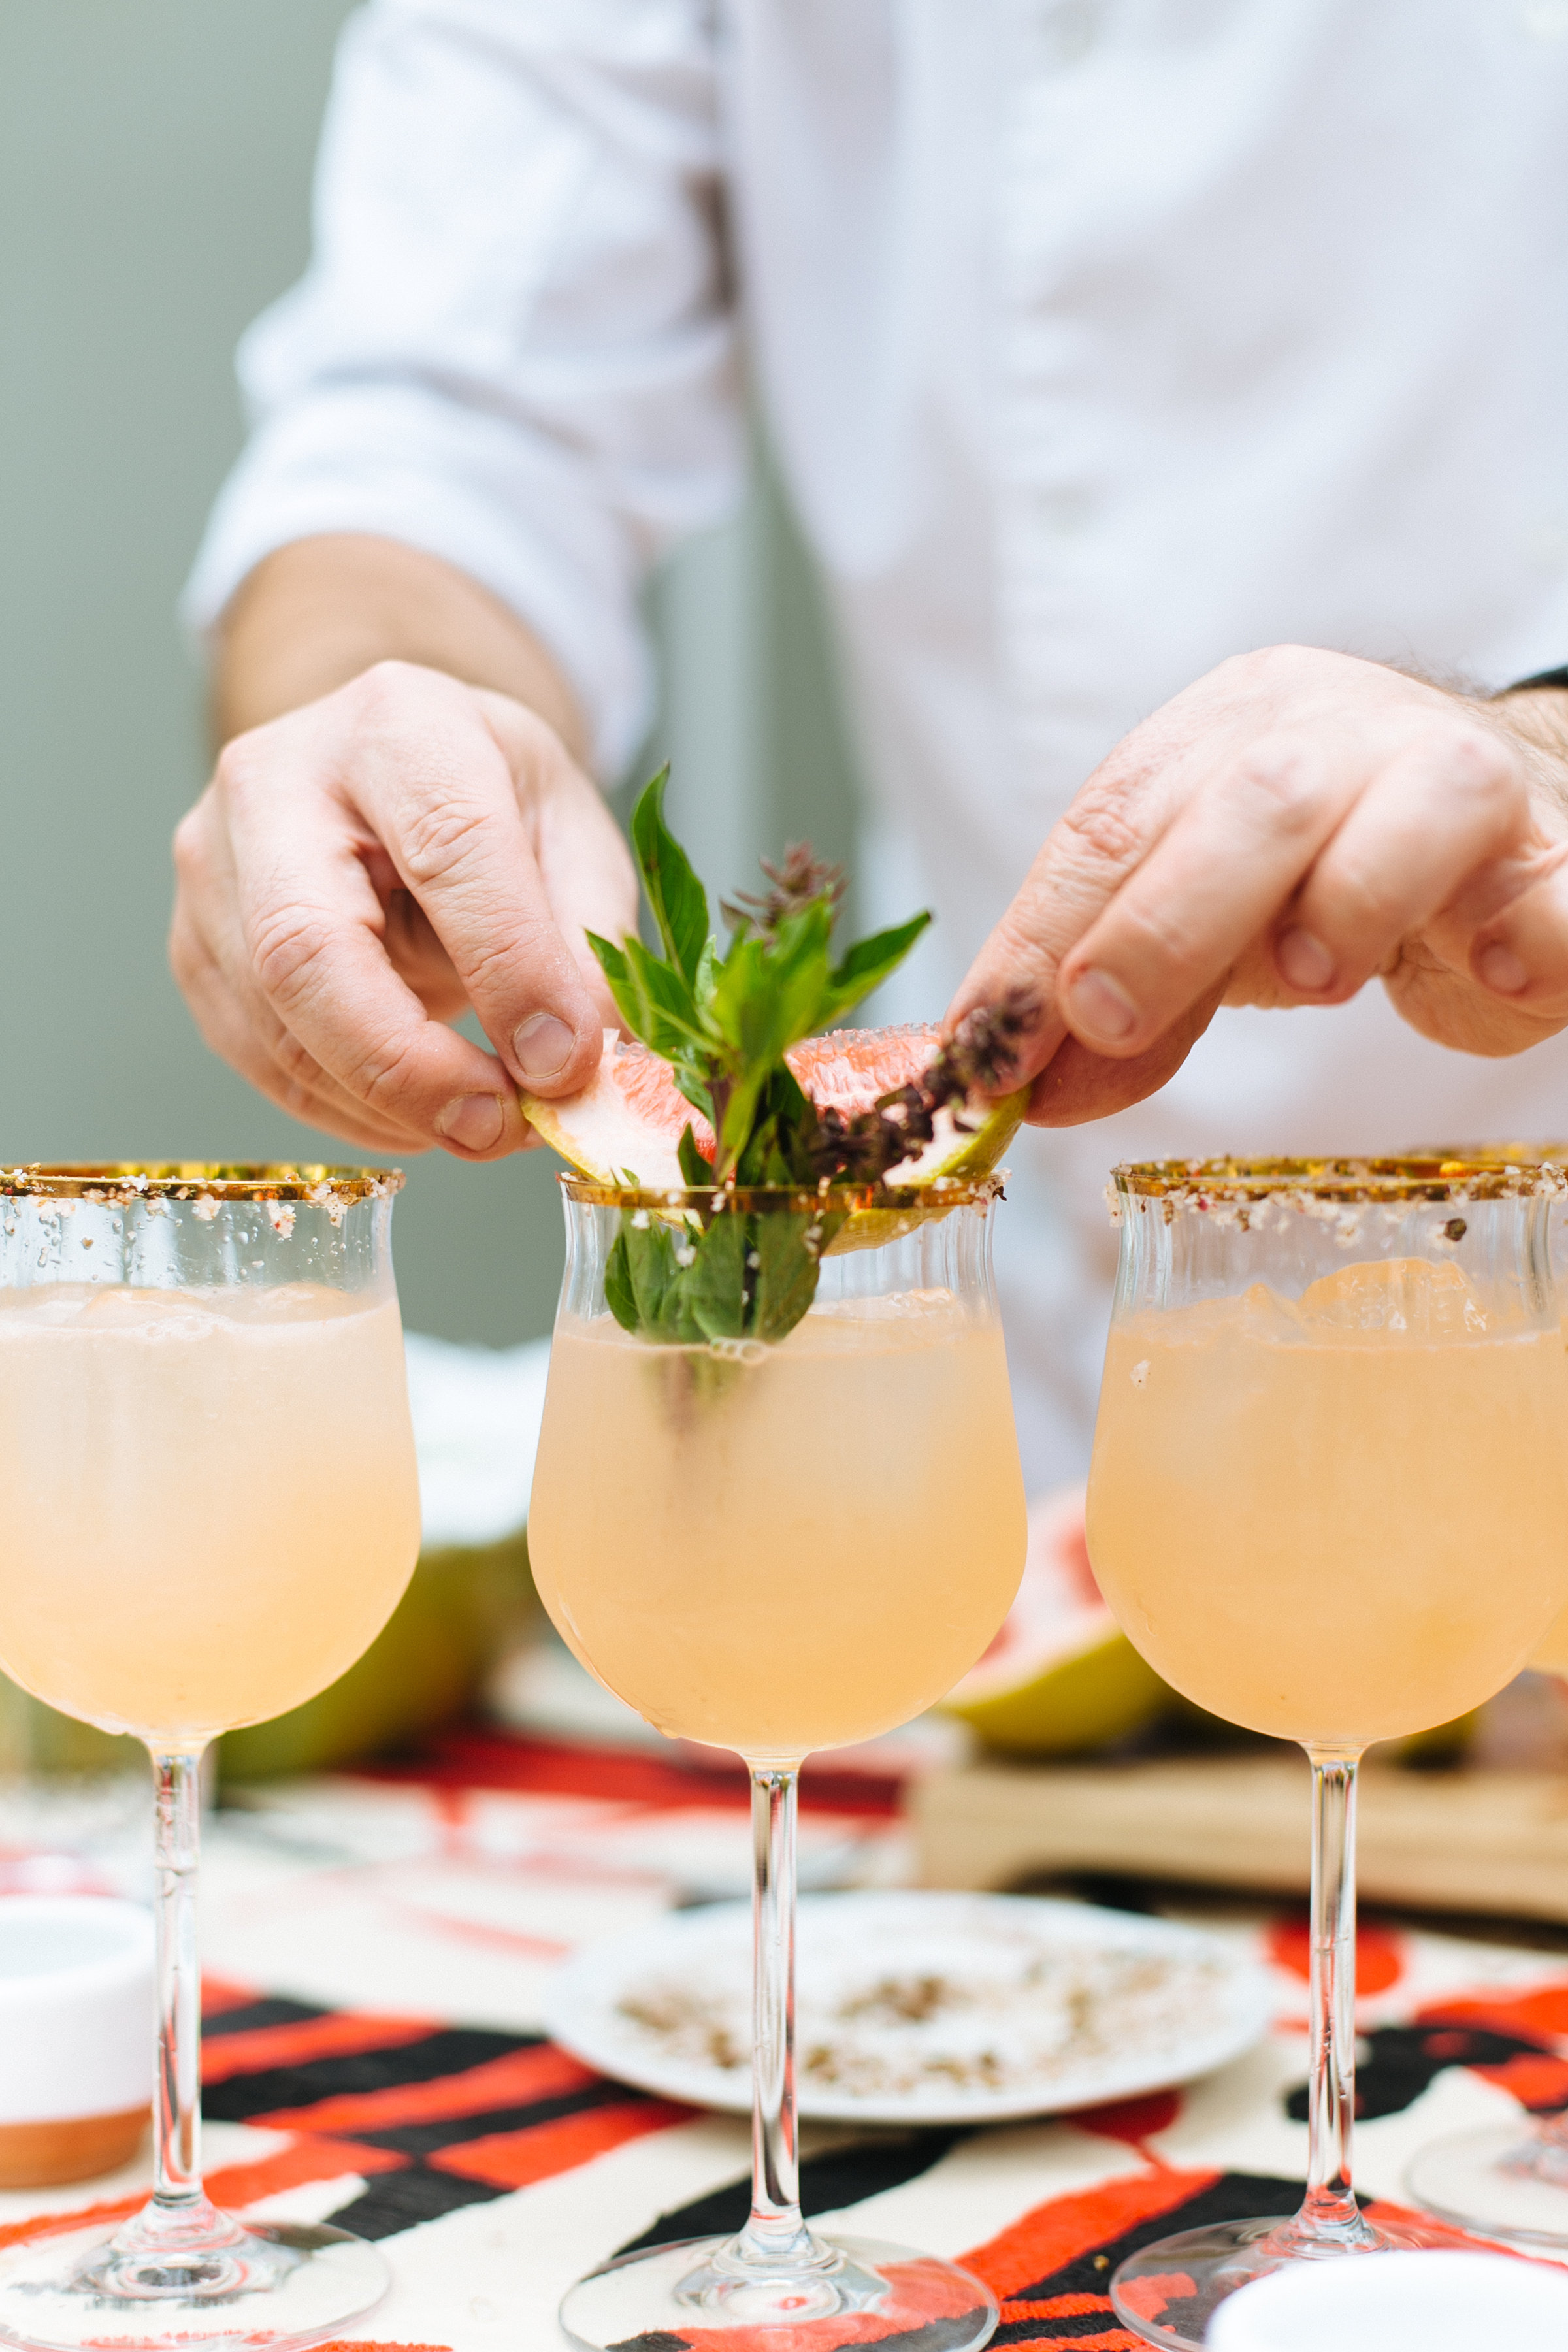 Copy of garnish on cocktails with Altos tequila